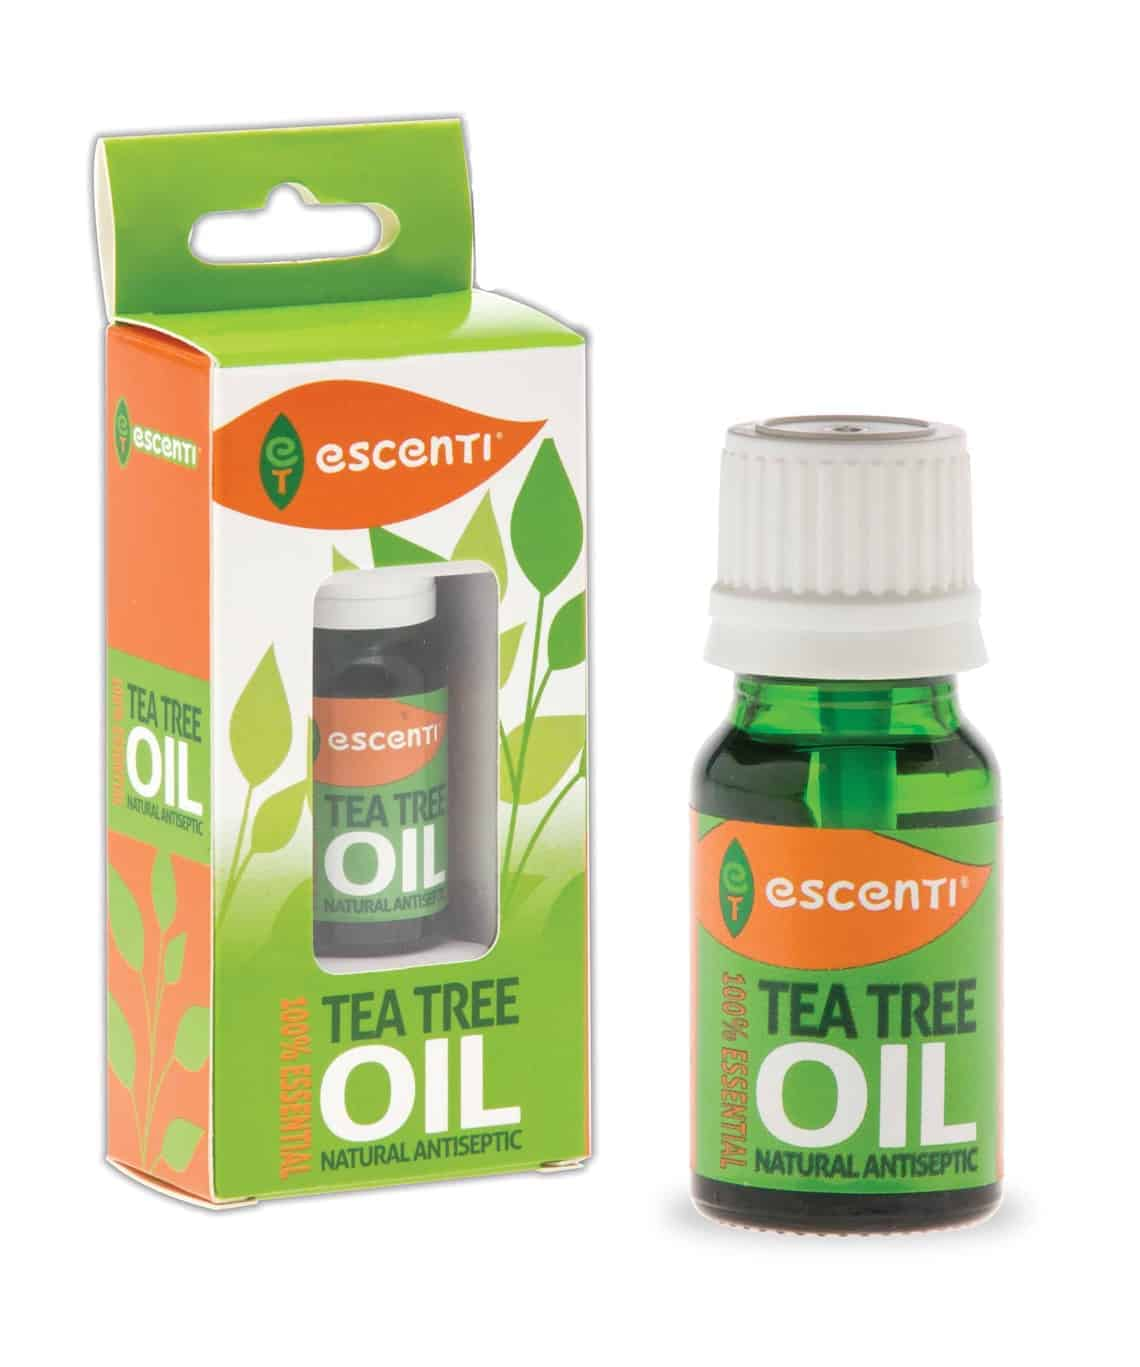 Escenti Tea Tree Oil